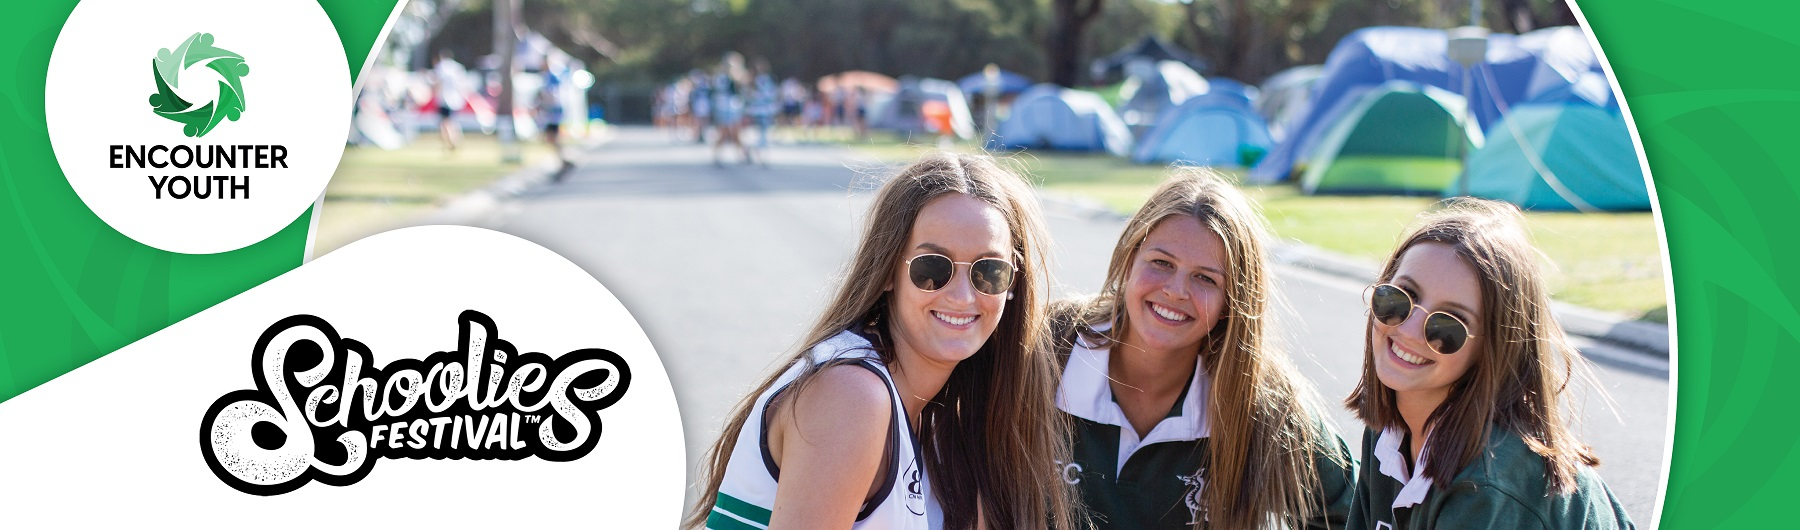 Plan ahead for Schoolies Festival